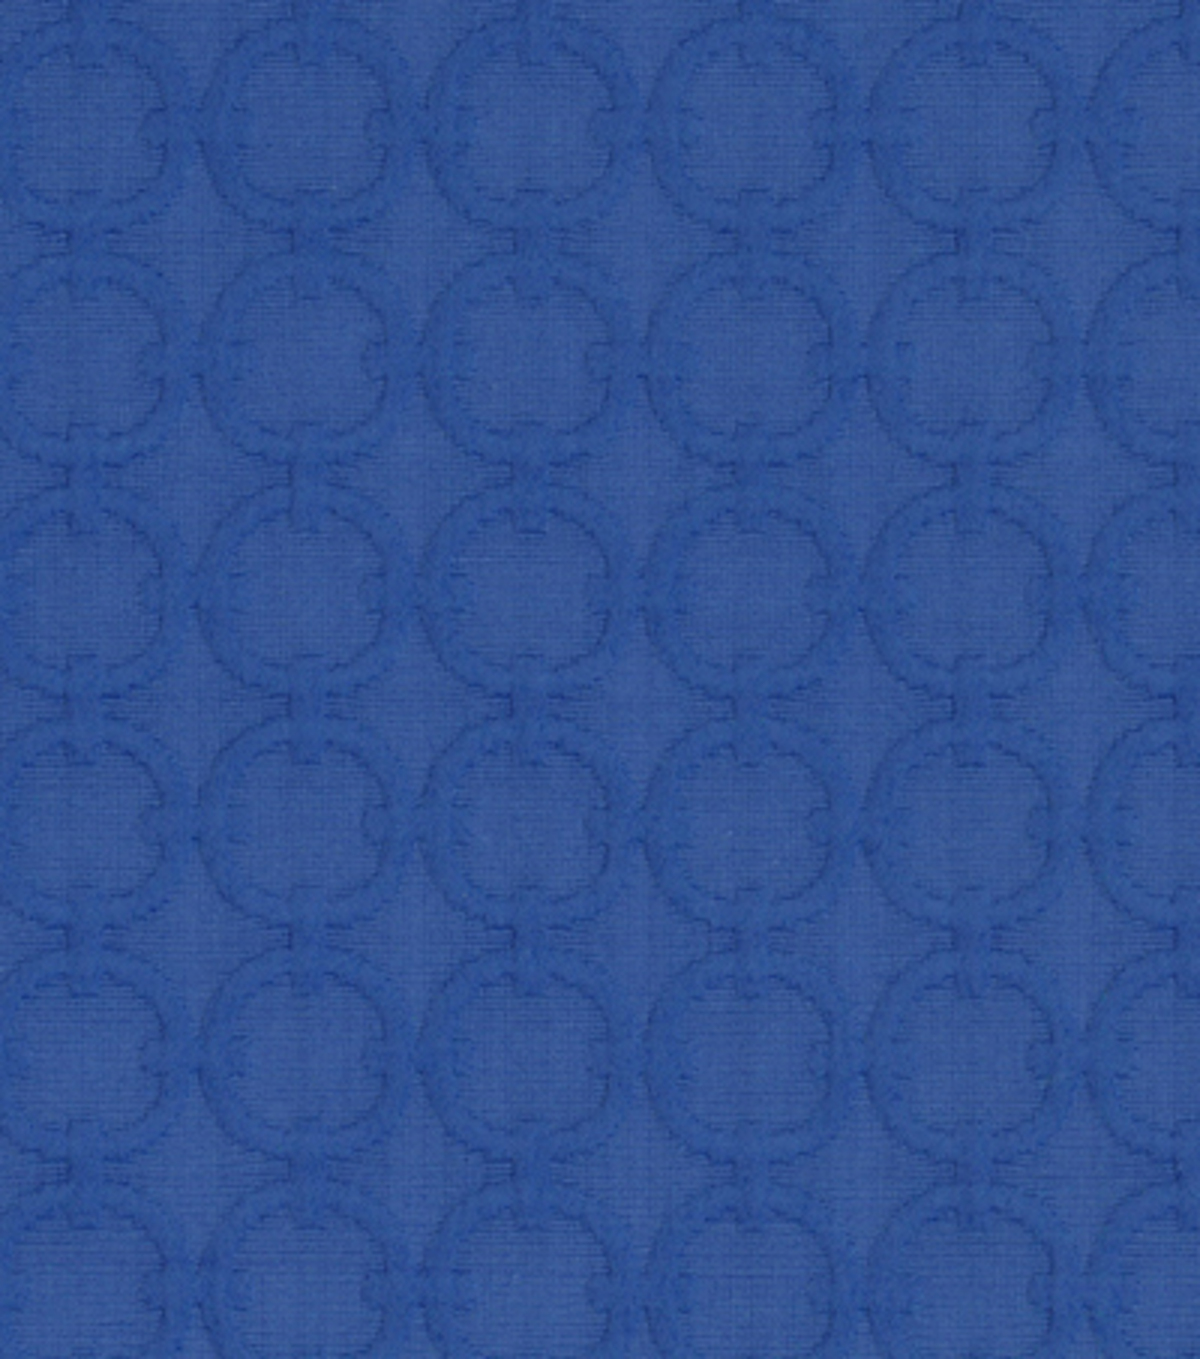 Home Decor 8\u0022x8\u0022 Fabric Swatch-Upholstery-Waverly Full Circle/Blue Marine